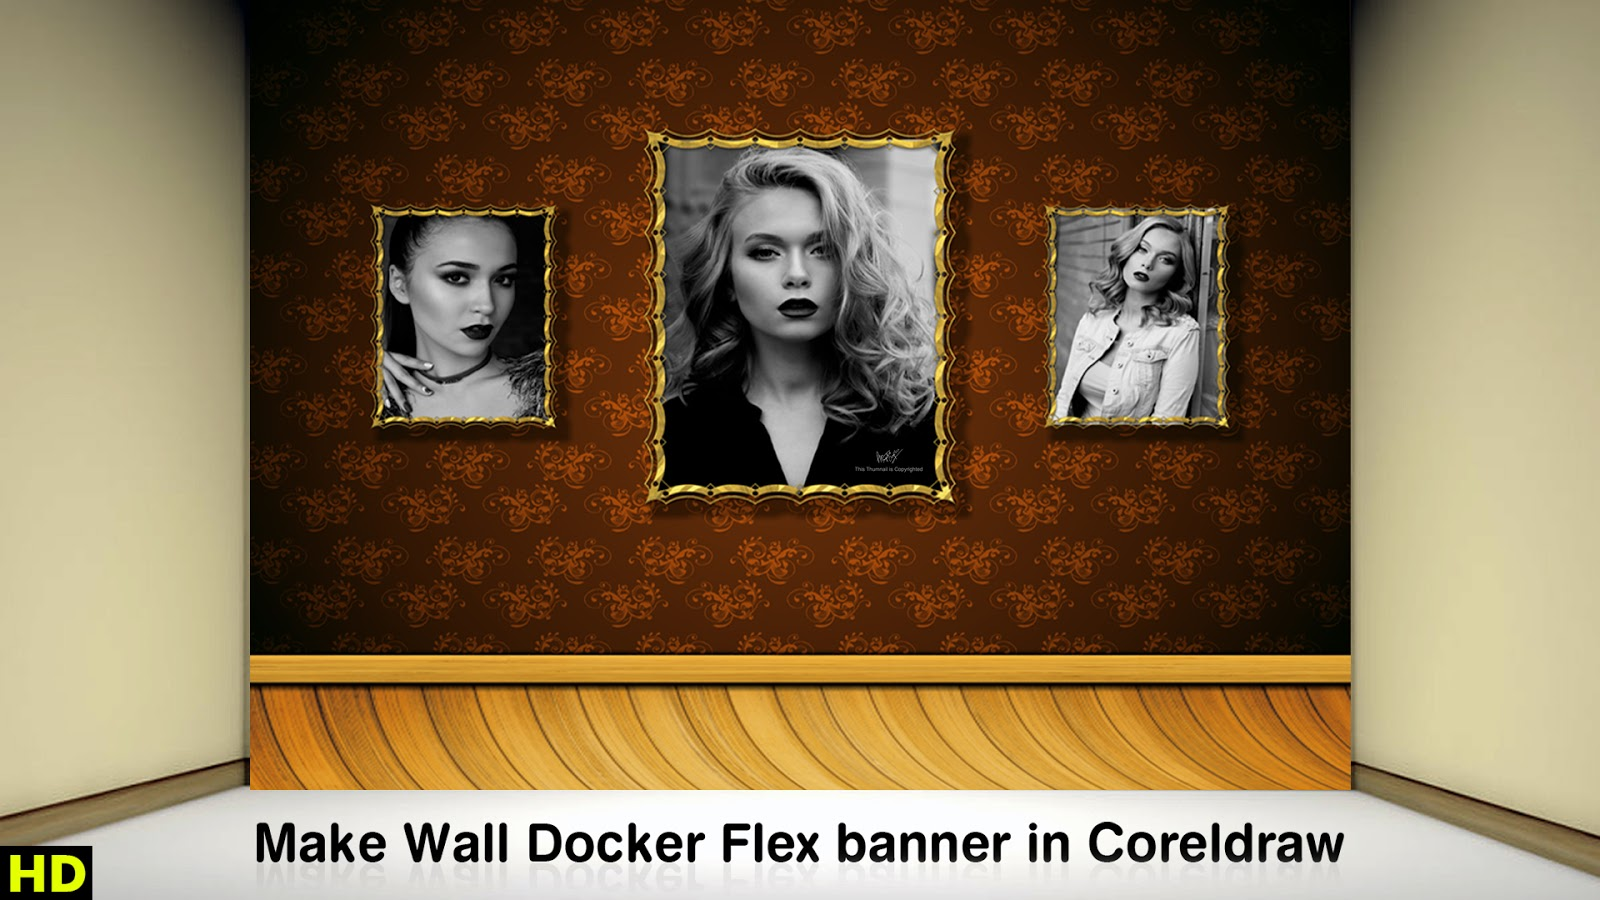 Wall Decor Flex banner in Cdr File - Anas Graphics